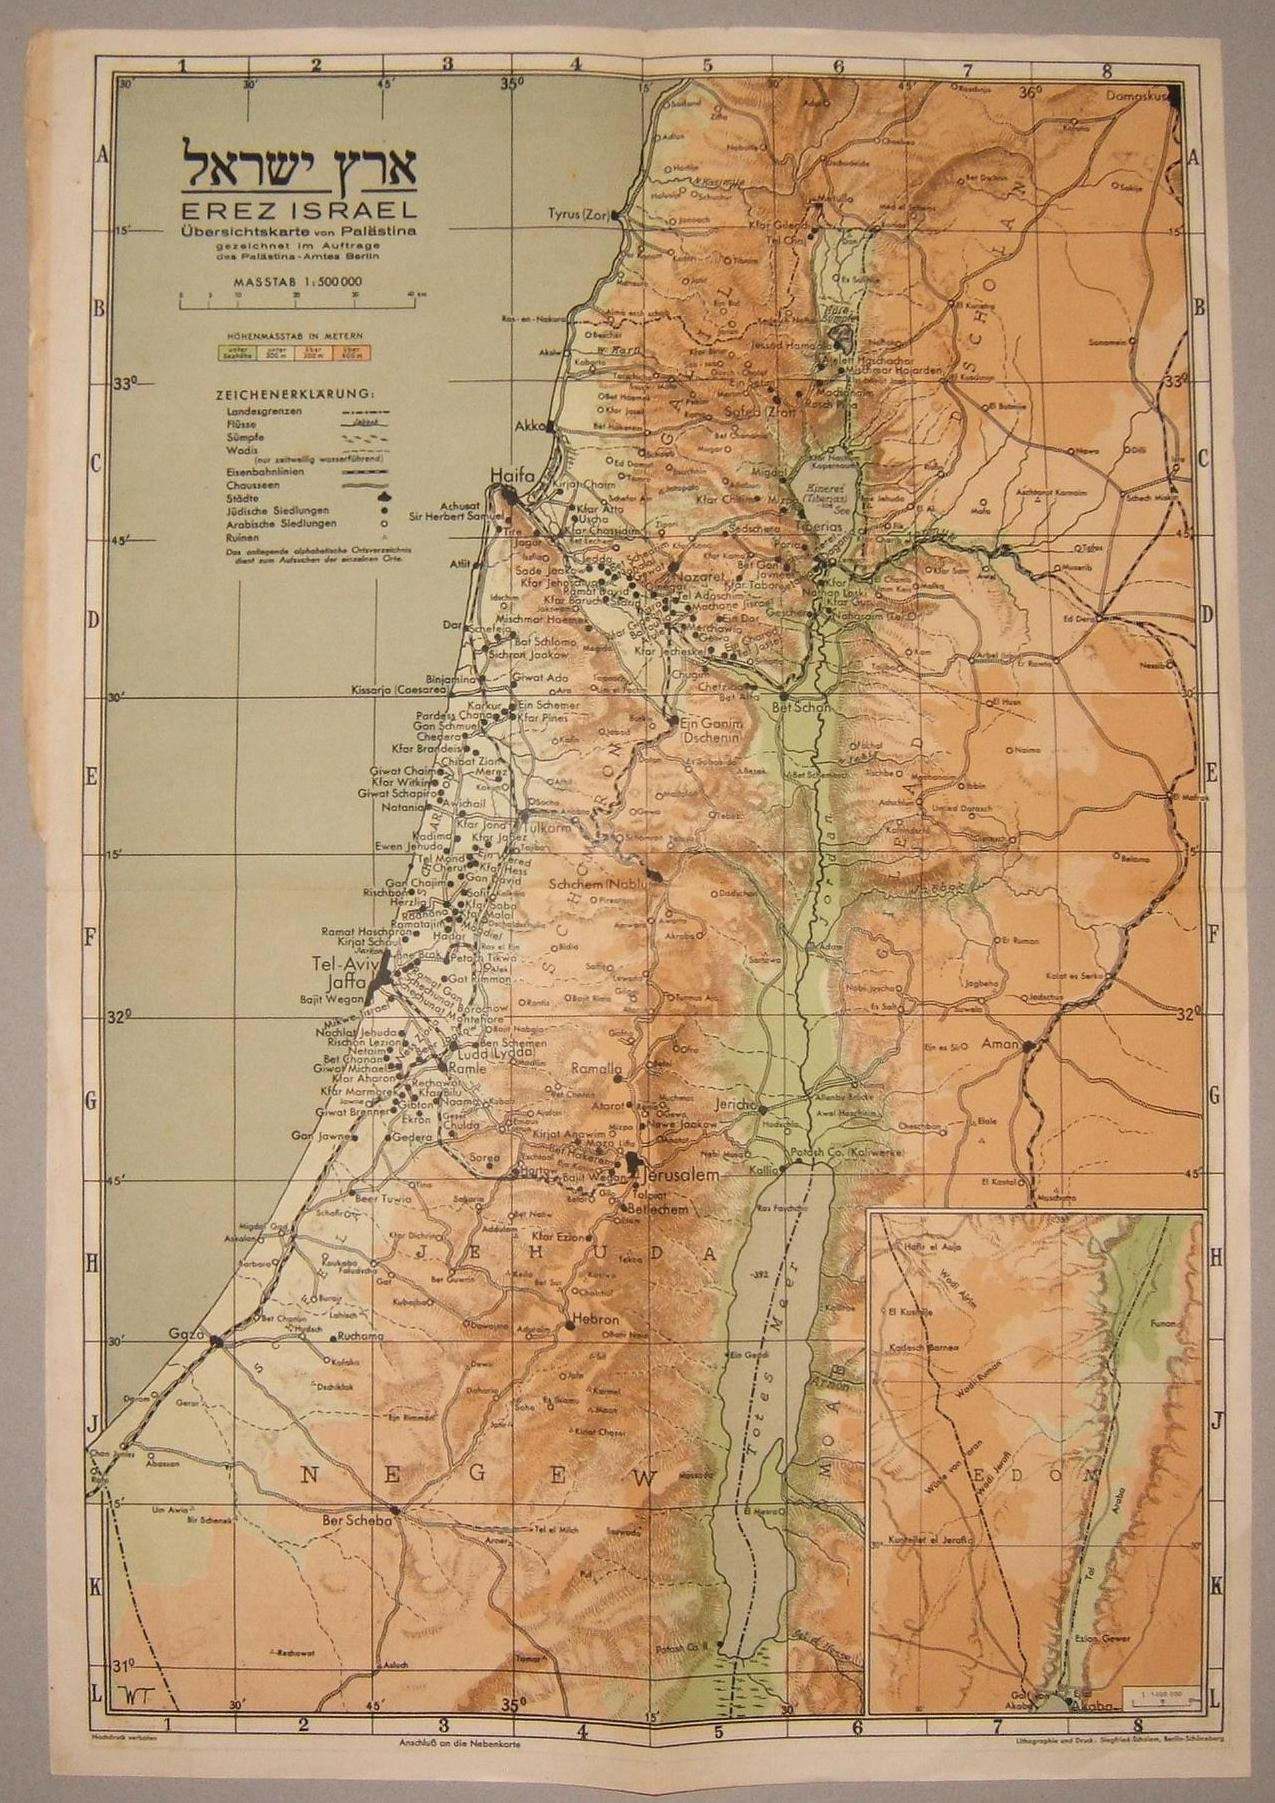 Germany: chromolithograph relief-map of Eretz Israel by Siegfried Scholem of Berlin-Schöneberg, circa. 1934-5: titled